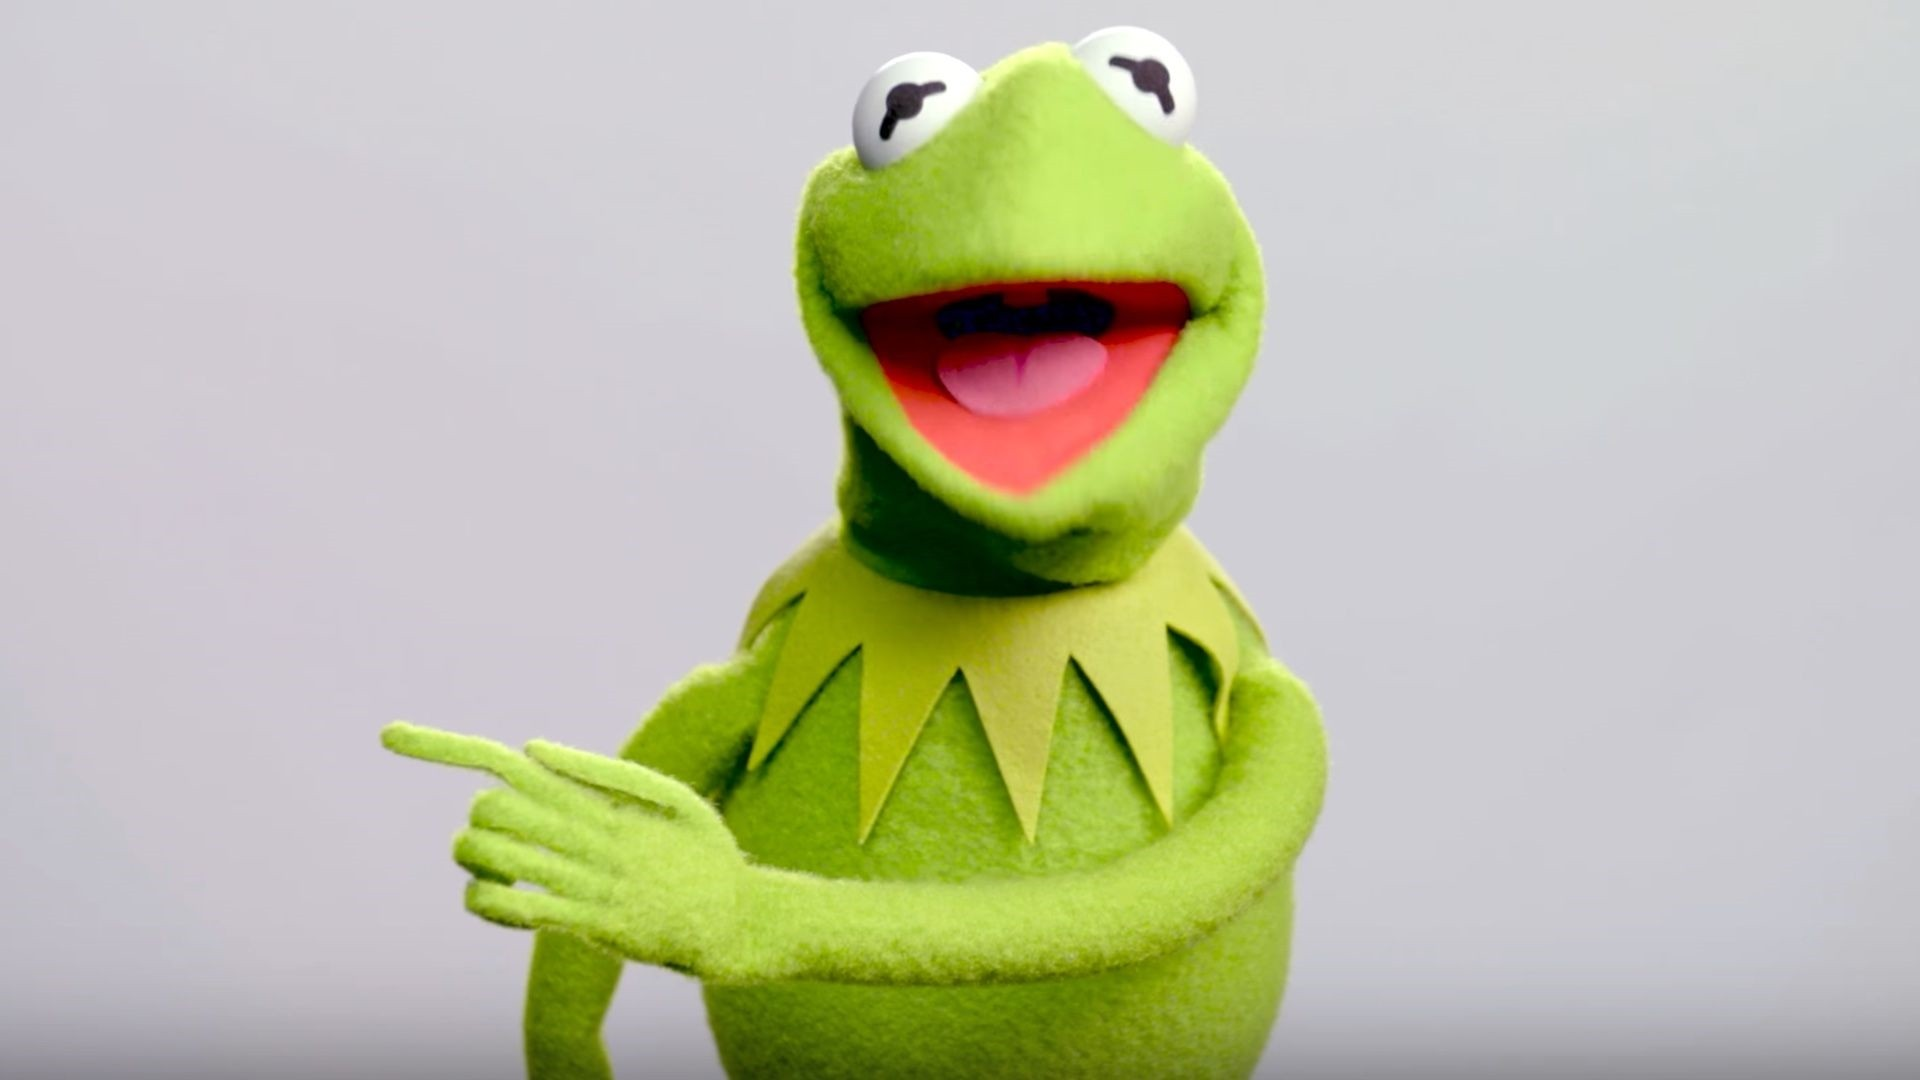 Hearts Kermit The Frog Wallpaper for pc